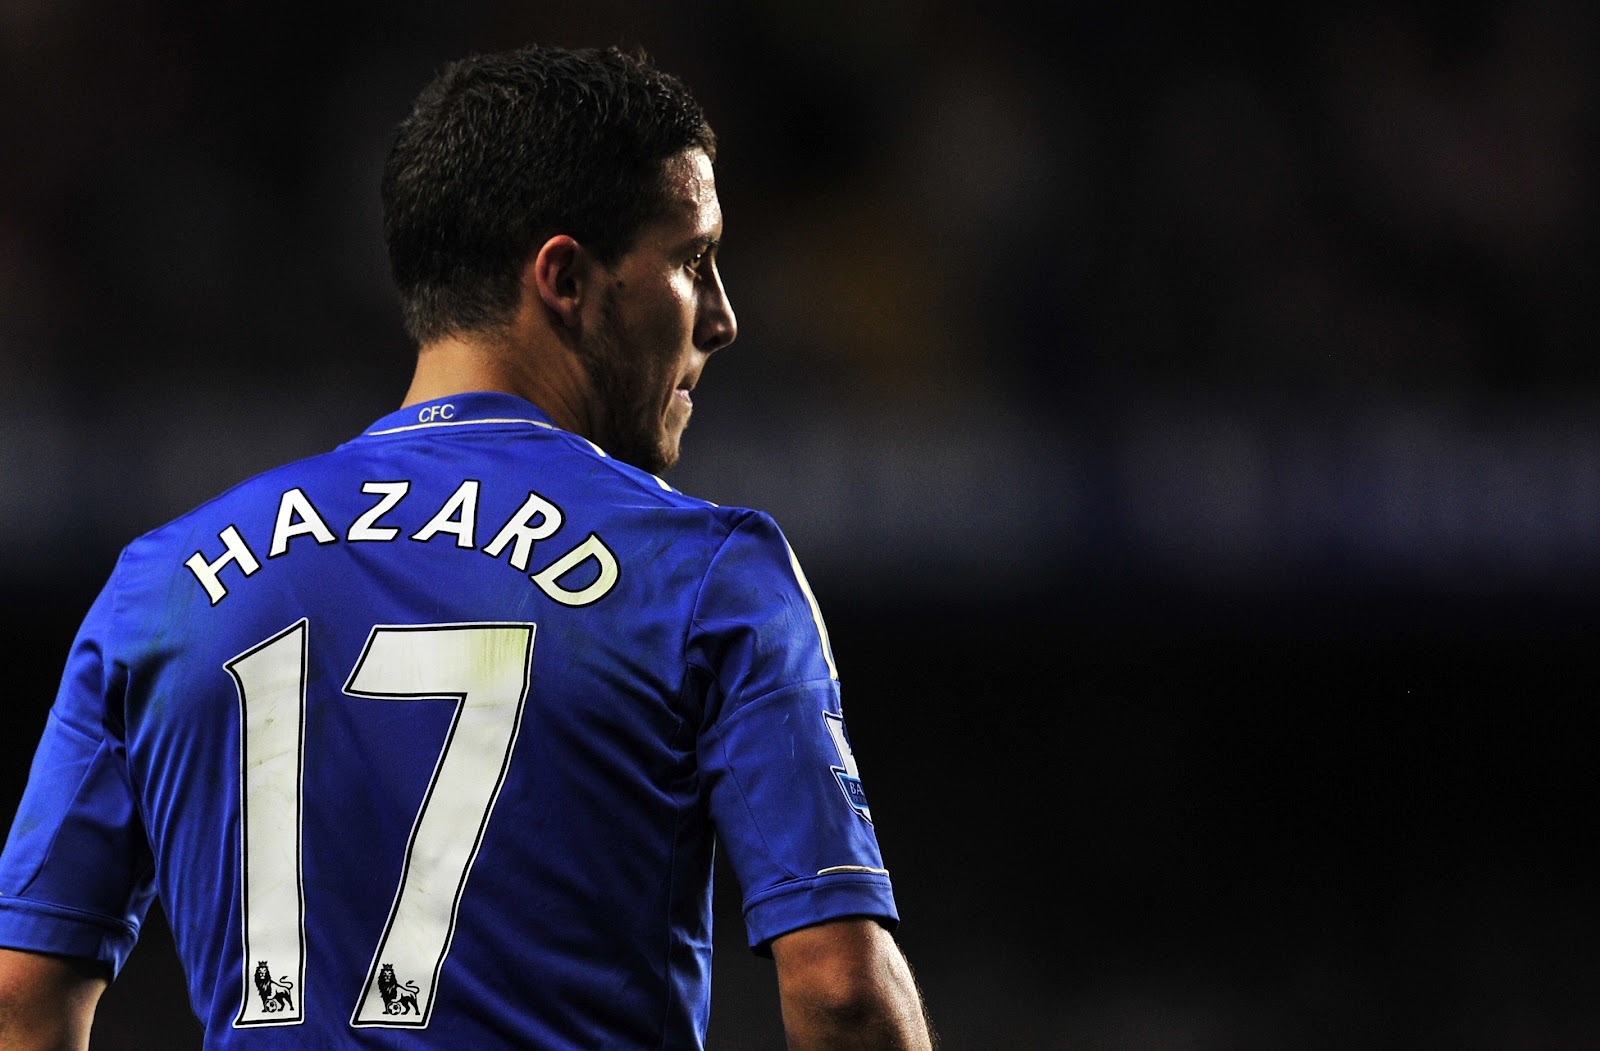 Free Download Eden Hazard Footballer Wallpaper Football Hd